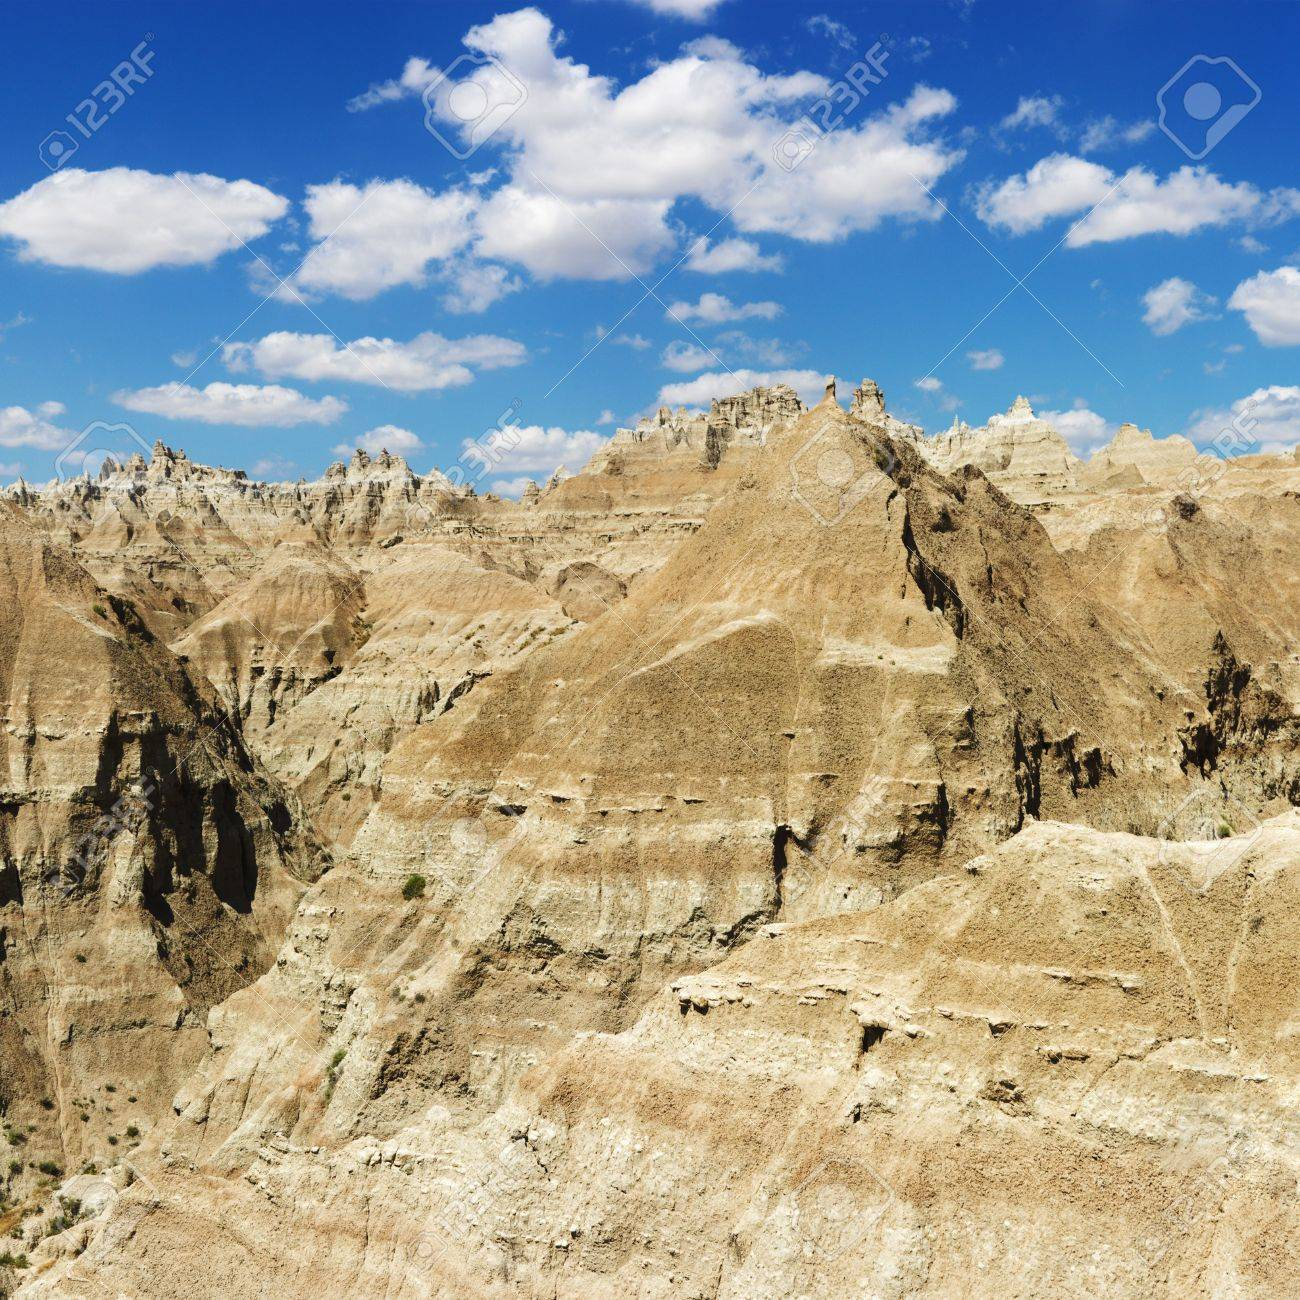 Mountain terrain in Badlands National Park, South Dakota, beneath blue sky and clouds. Square format. Stock Photo - 6913386